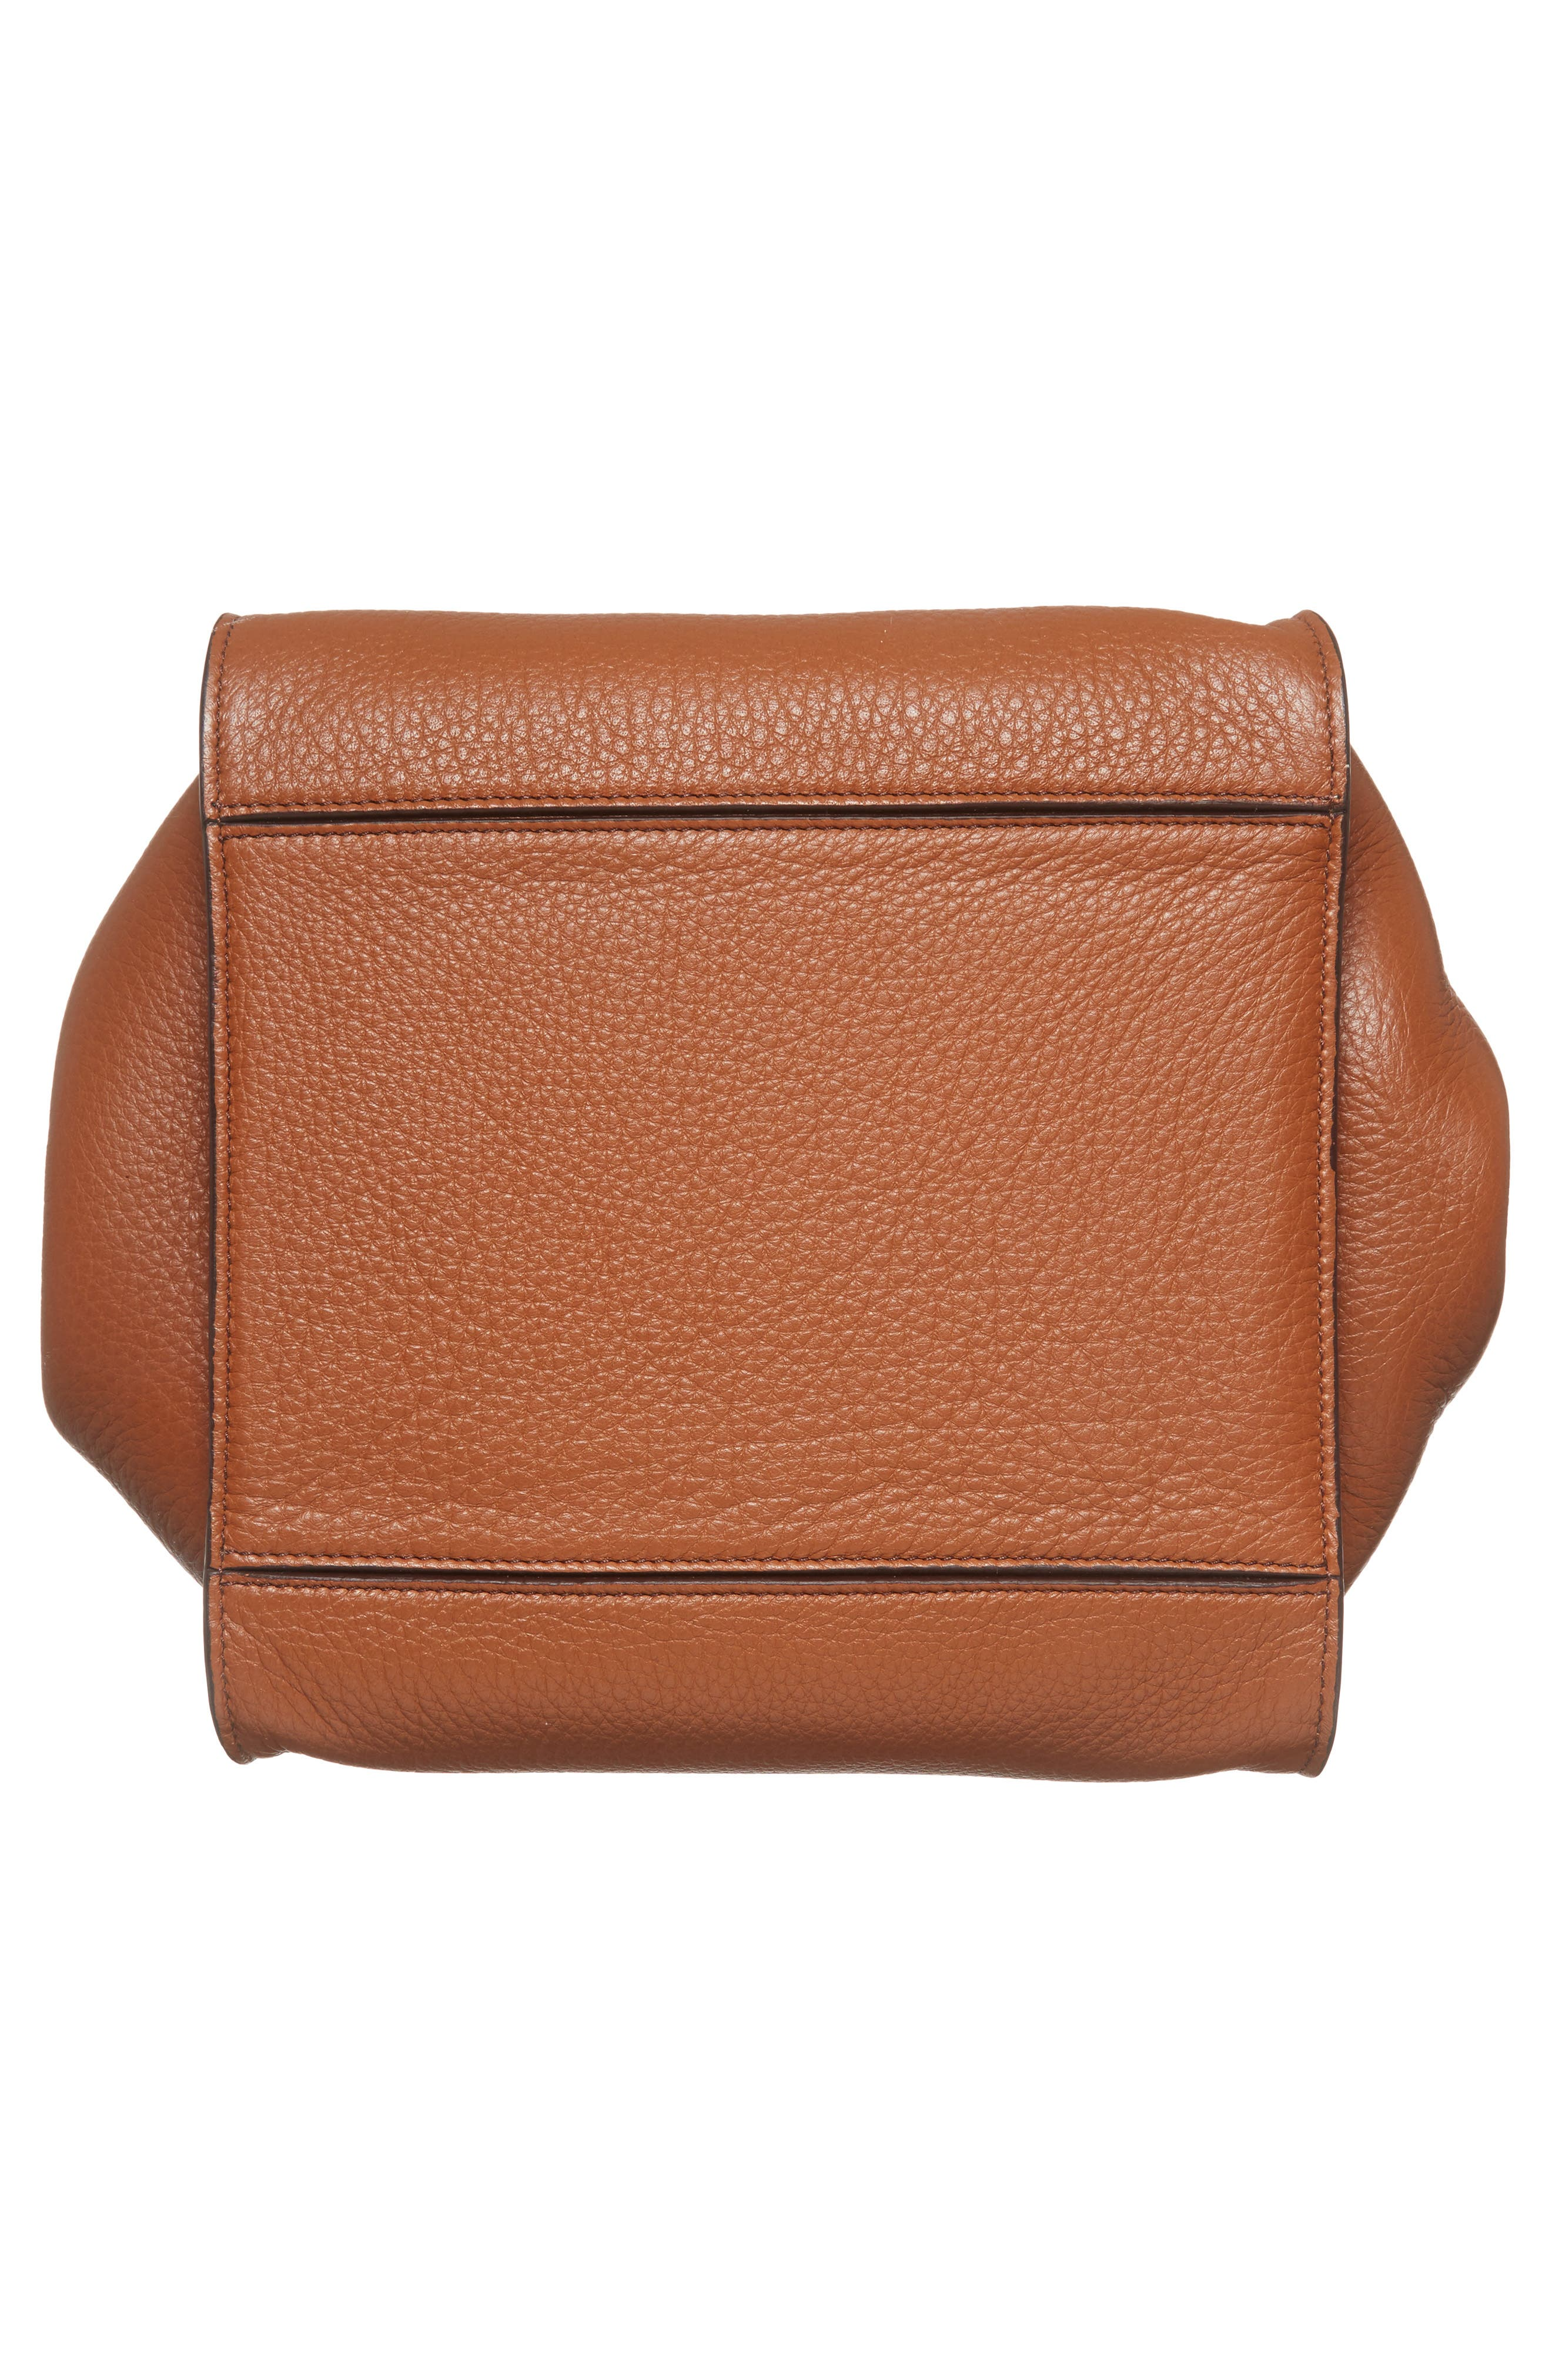 Deerskin Leather Satchel,                             Alternate thumbnail 6, color,                             Cuoio